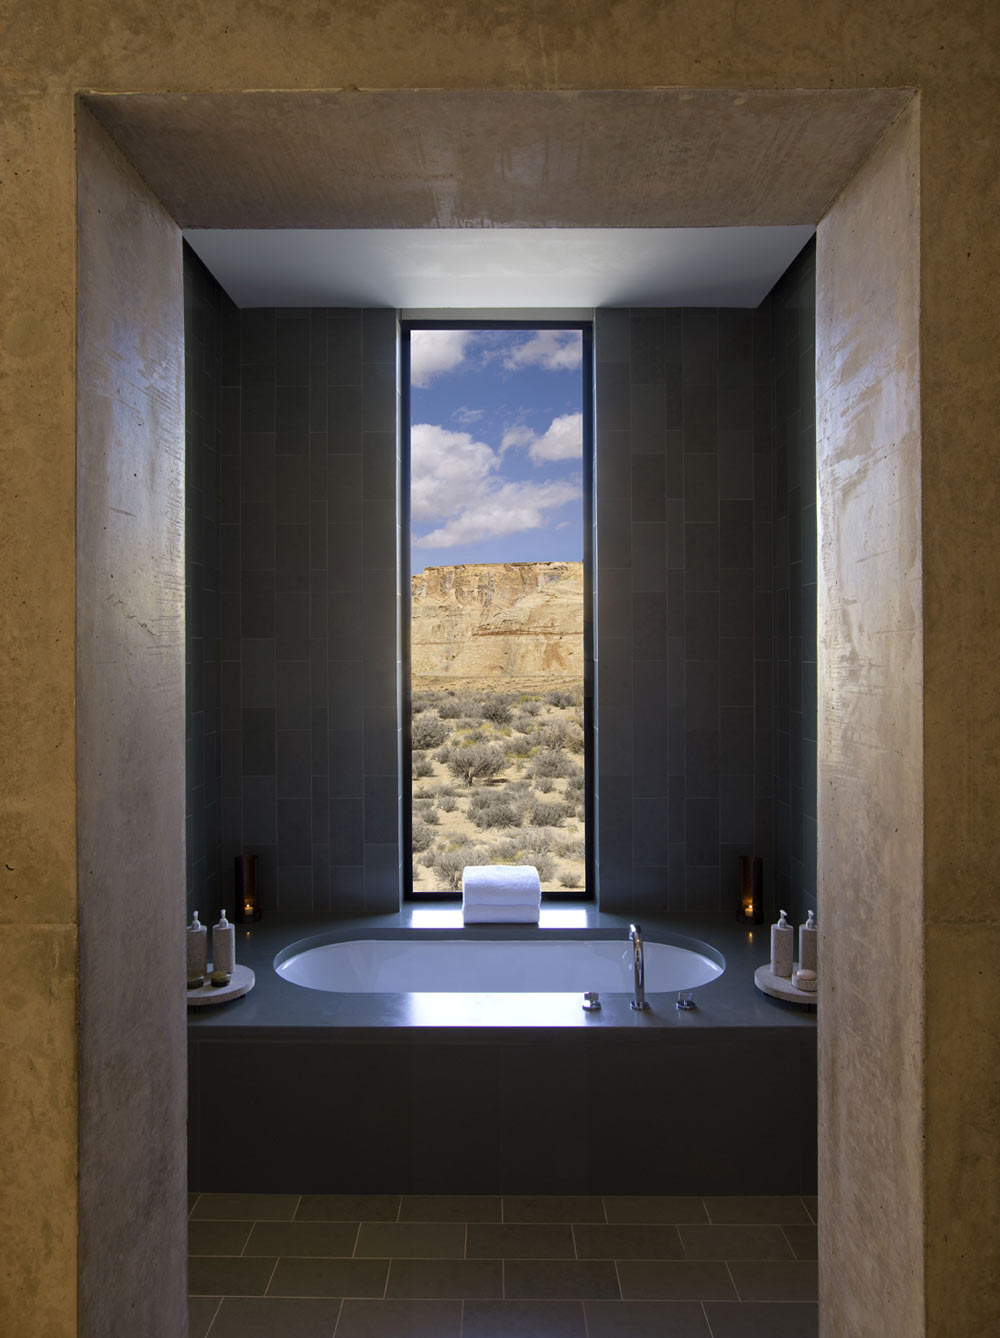 View from the bathroom of a Mesa View Suite at Amangiri in Canyon PointSouthern Utah courtesy of Amanresorts